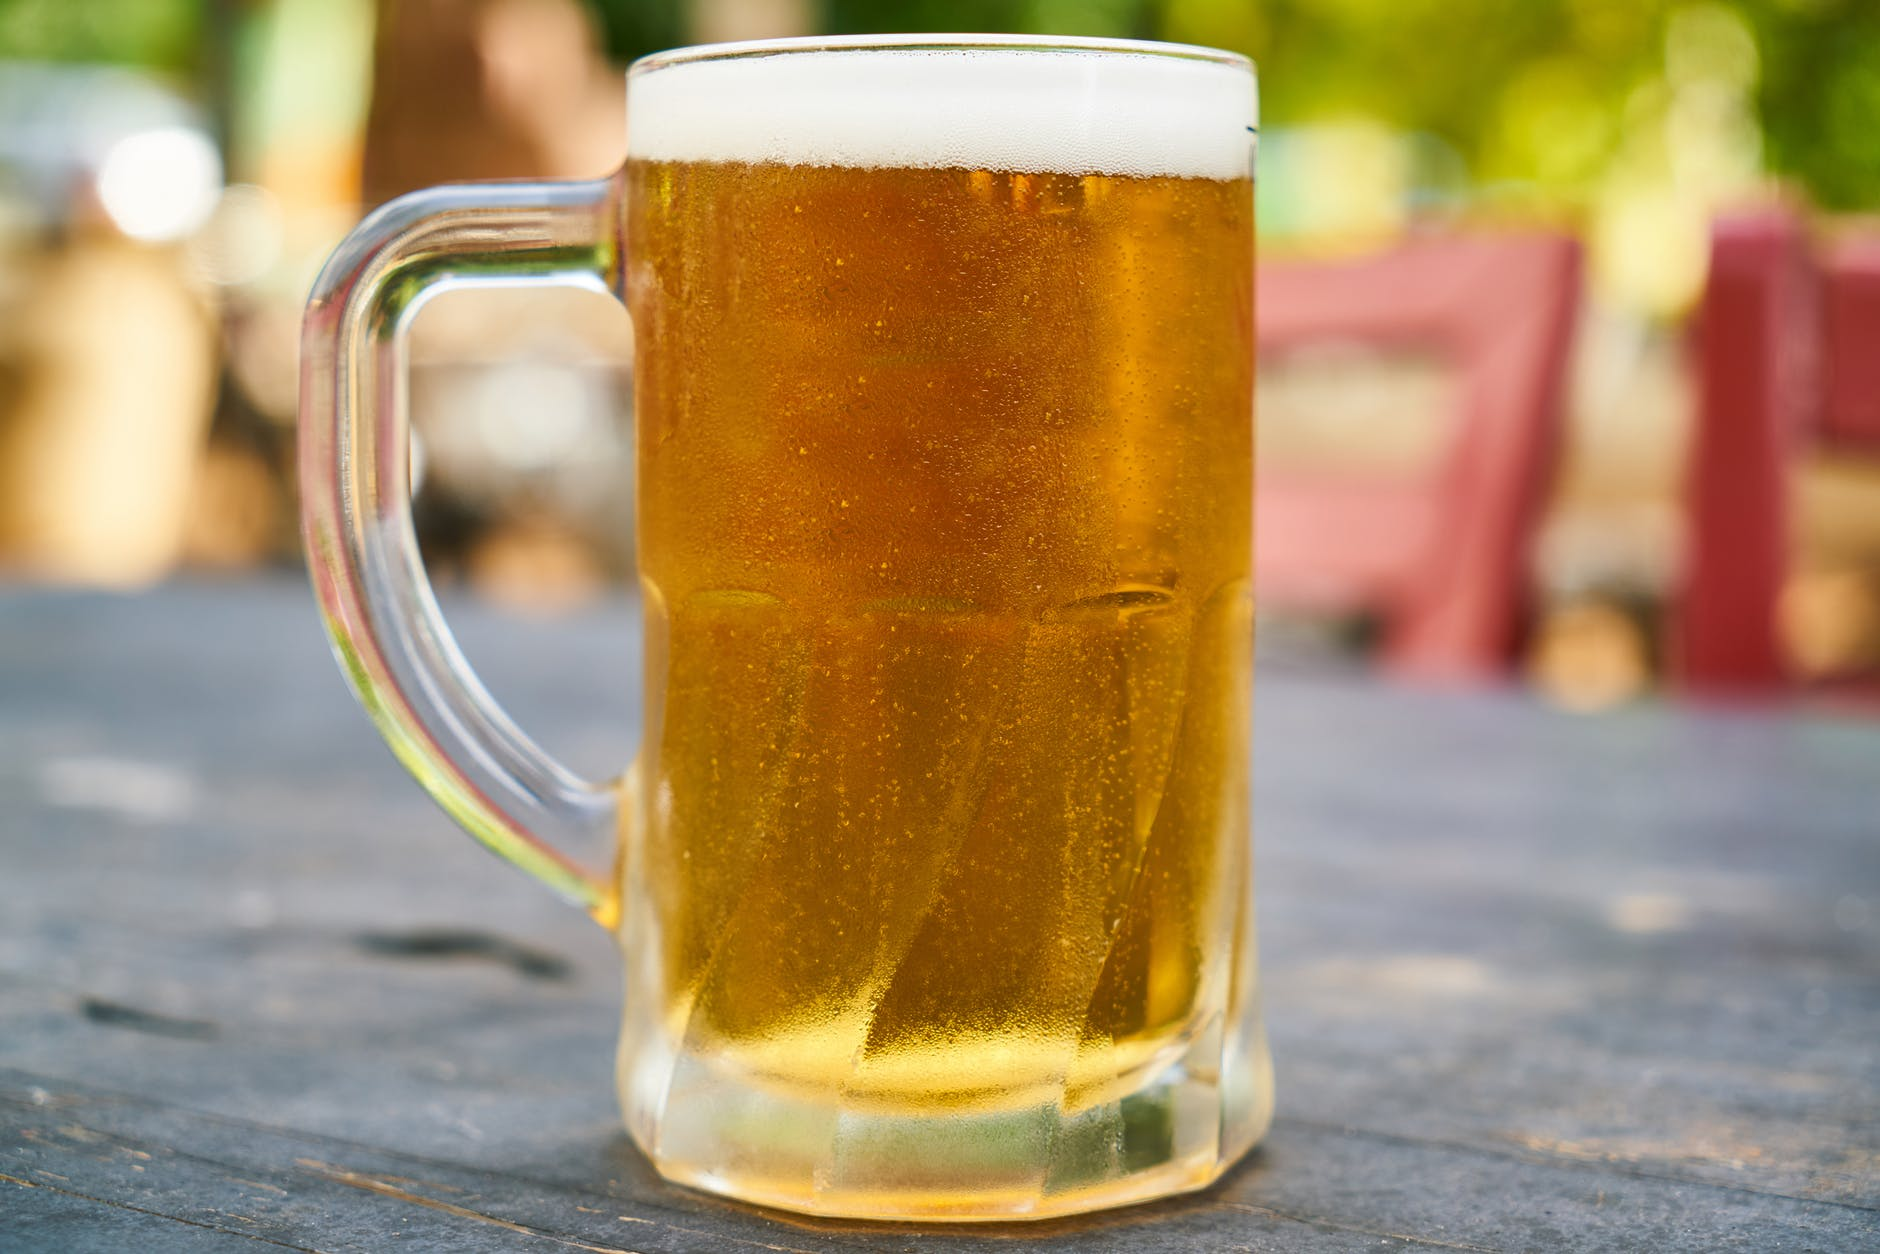 Beer Market Illuminated By New Report – Key Player Allied Blenders and Distillers Pvt. Ltd. (ABD), Anheuser-Busch InBev , ASAHI GROUP HOLDINGS, Birra Menabrea